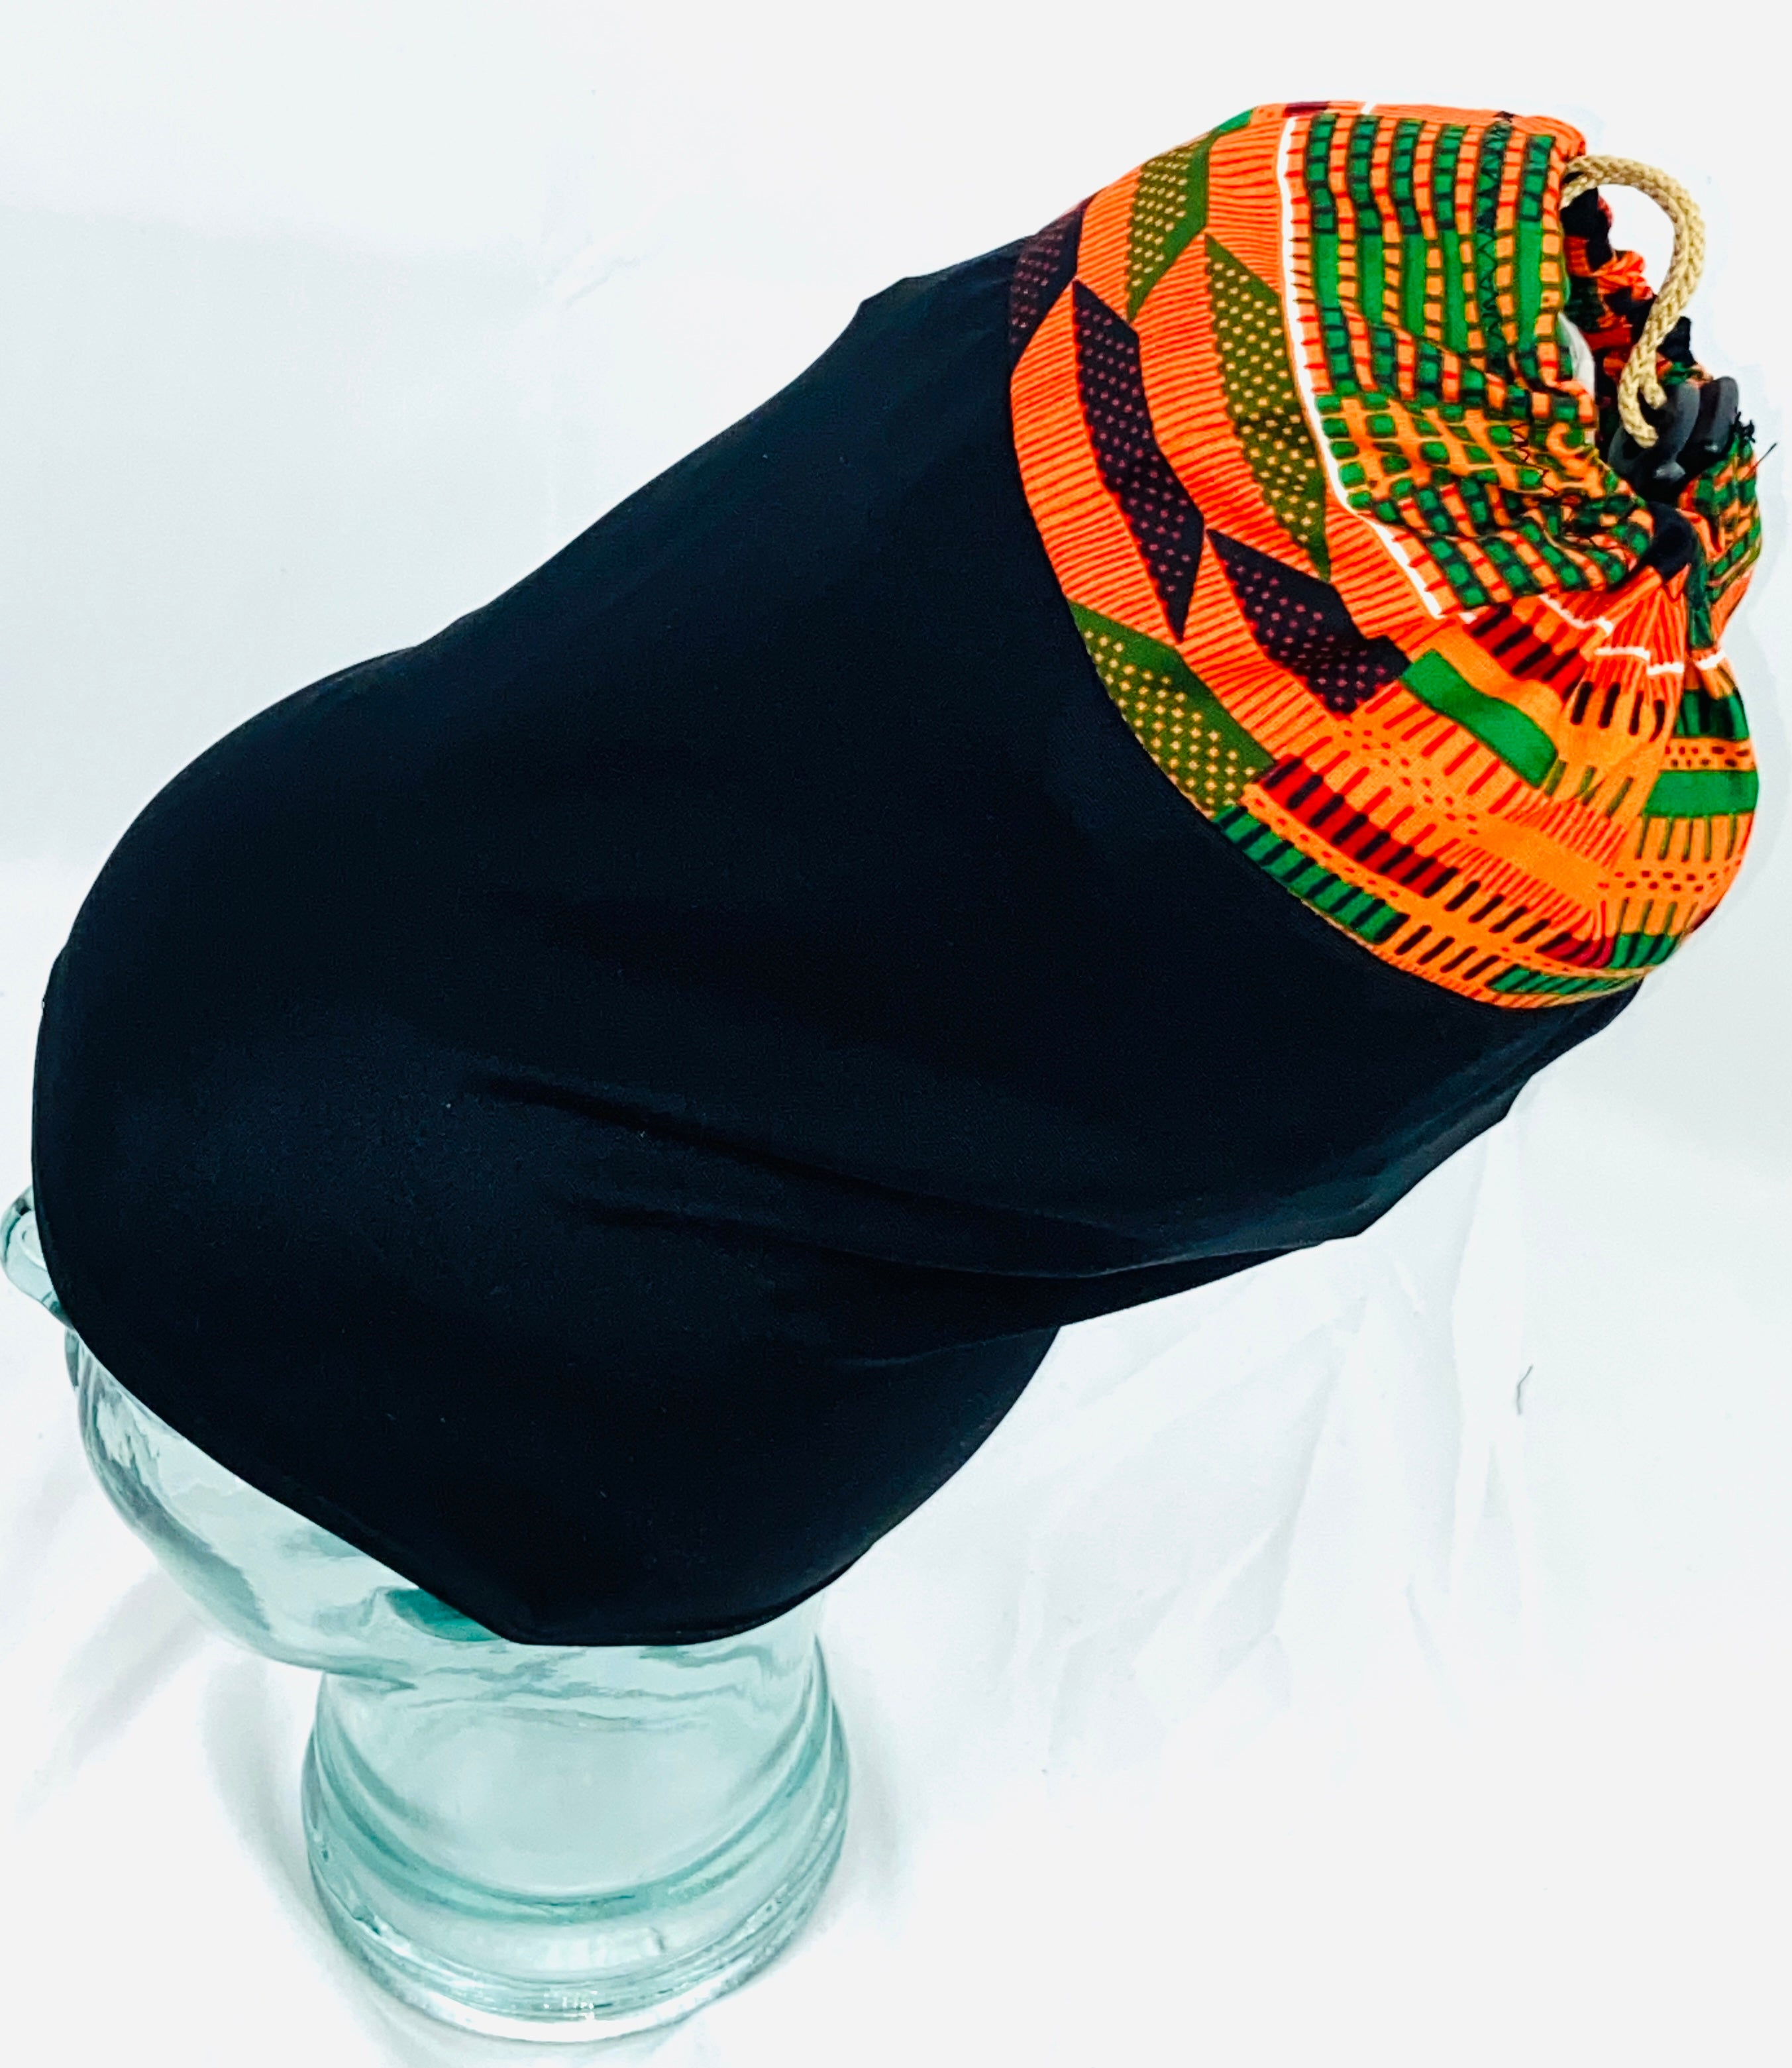 Stretchy head covering Original Kente Tophat